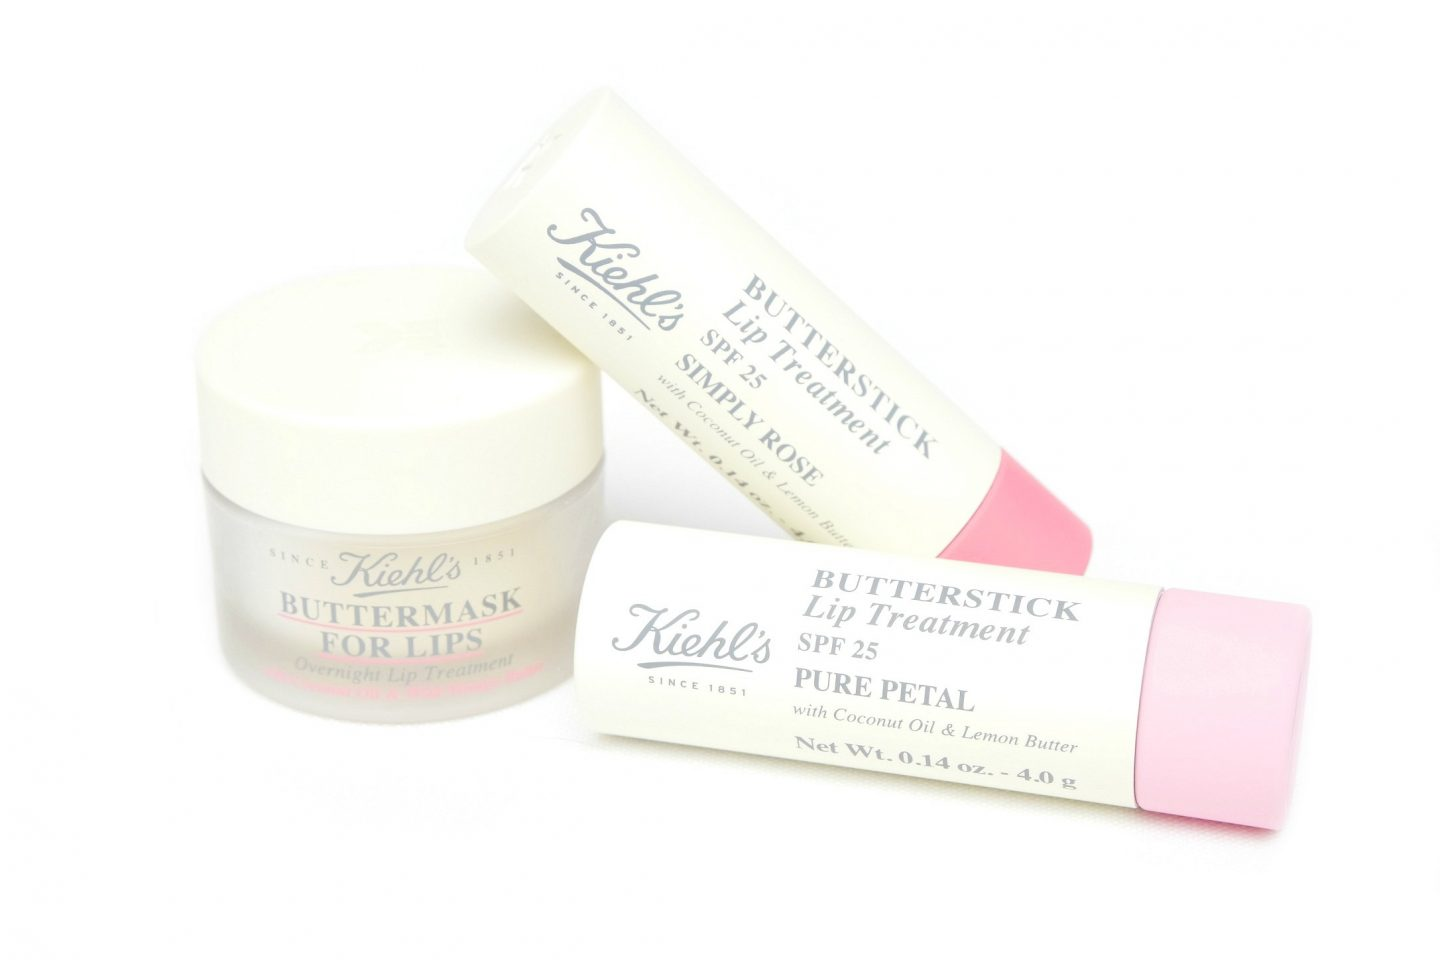 Kiehl's Lip Treatments Review